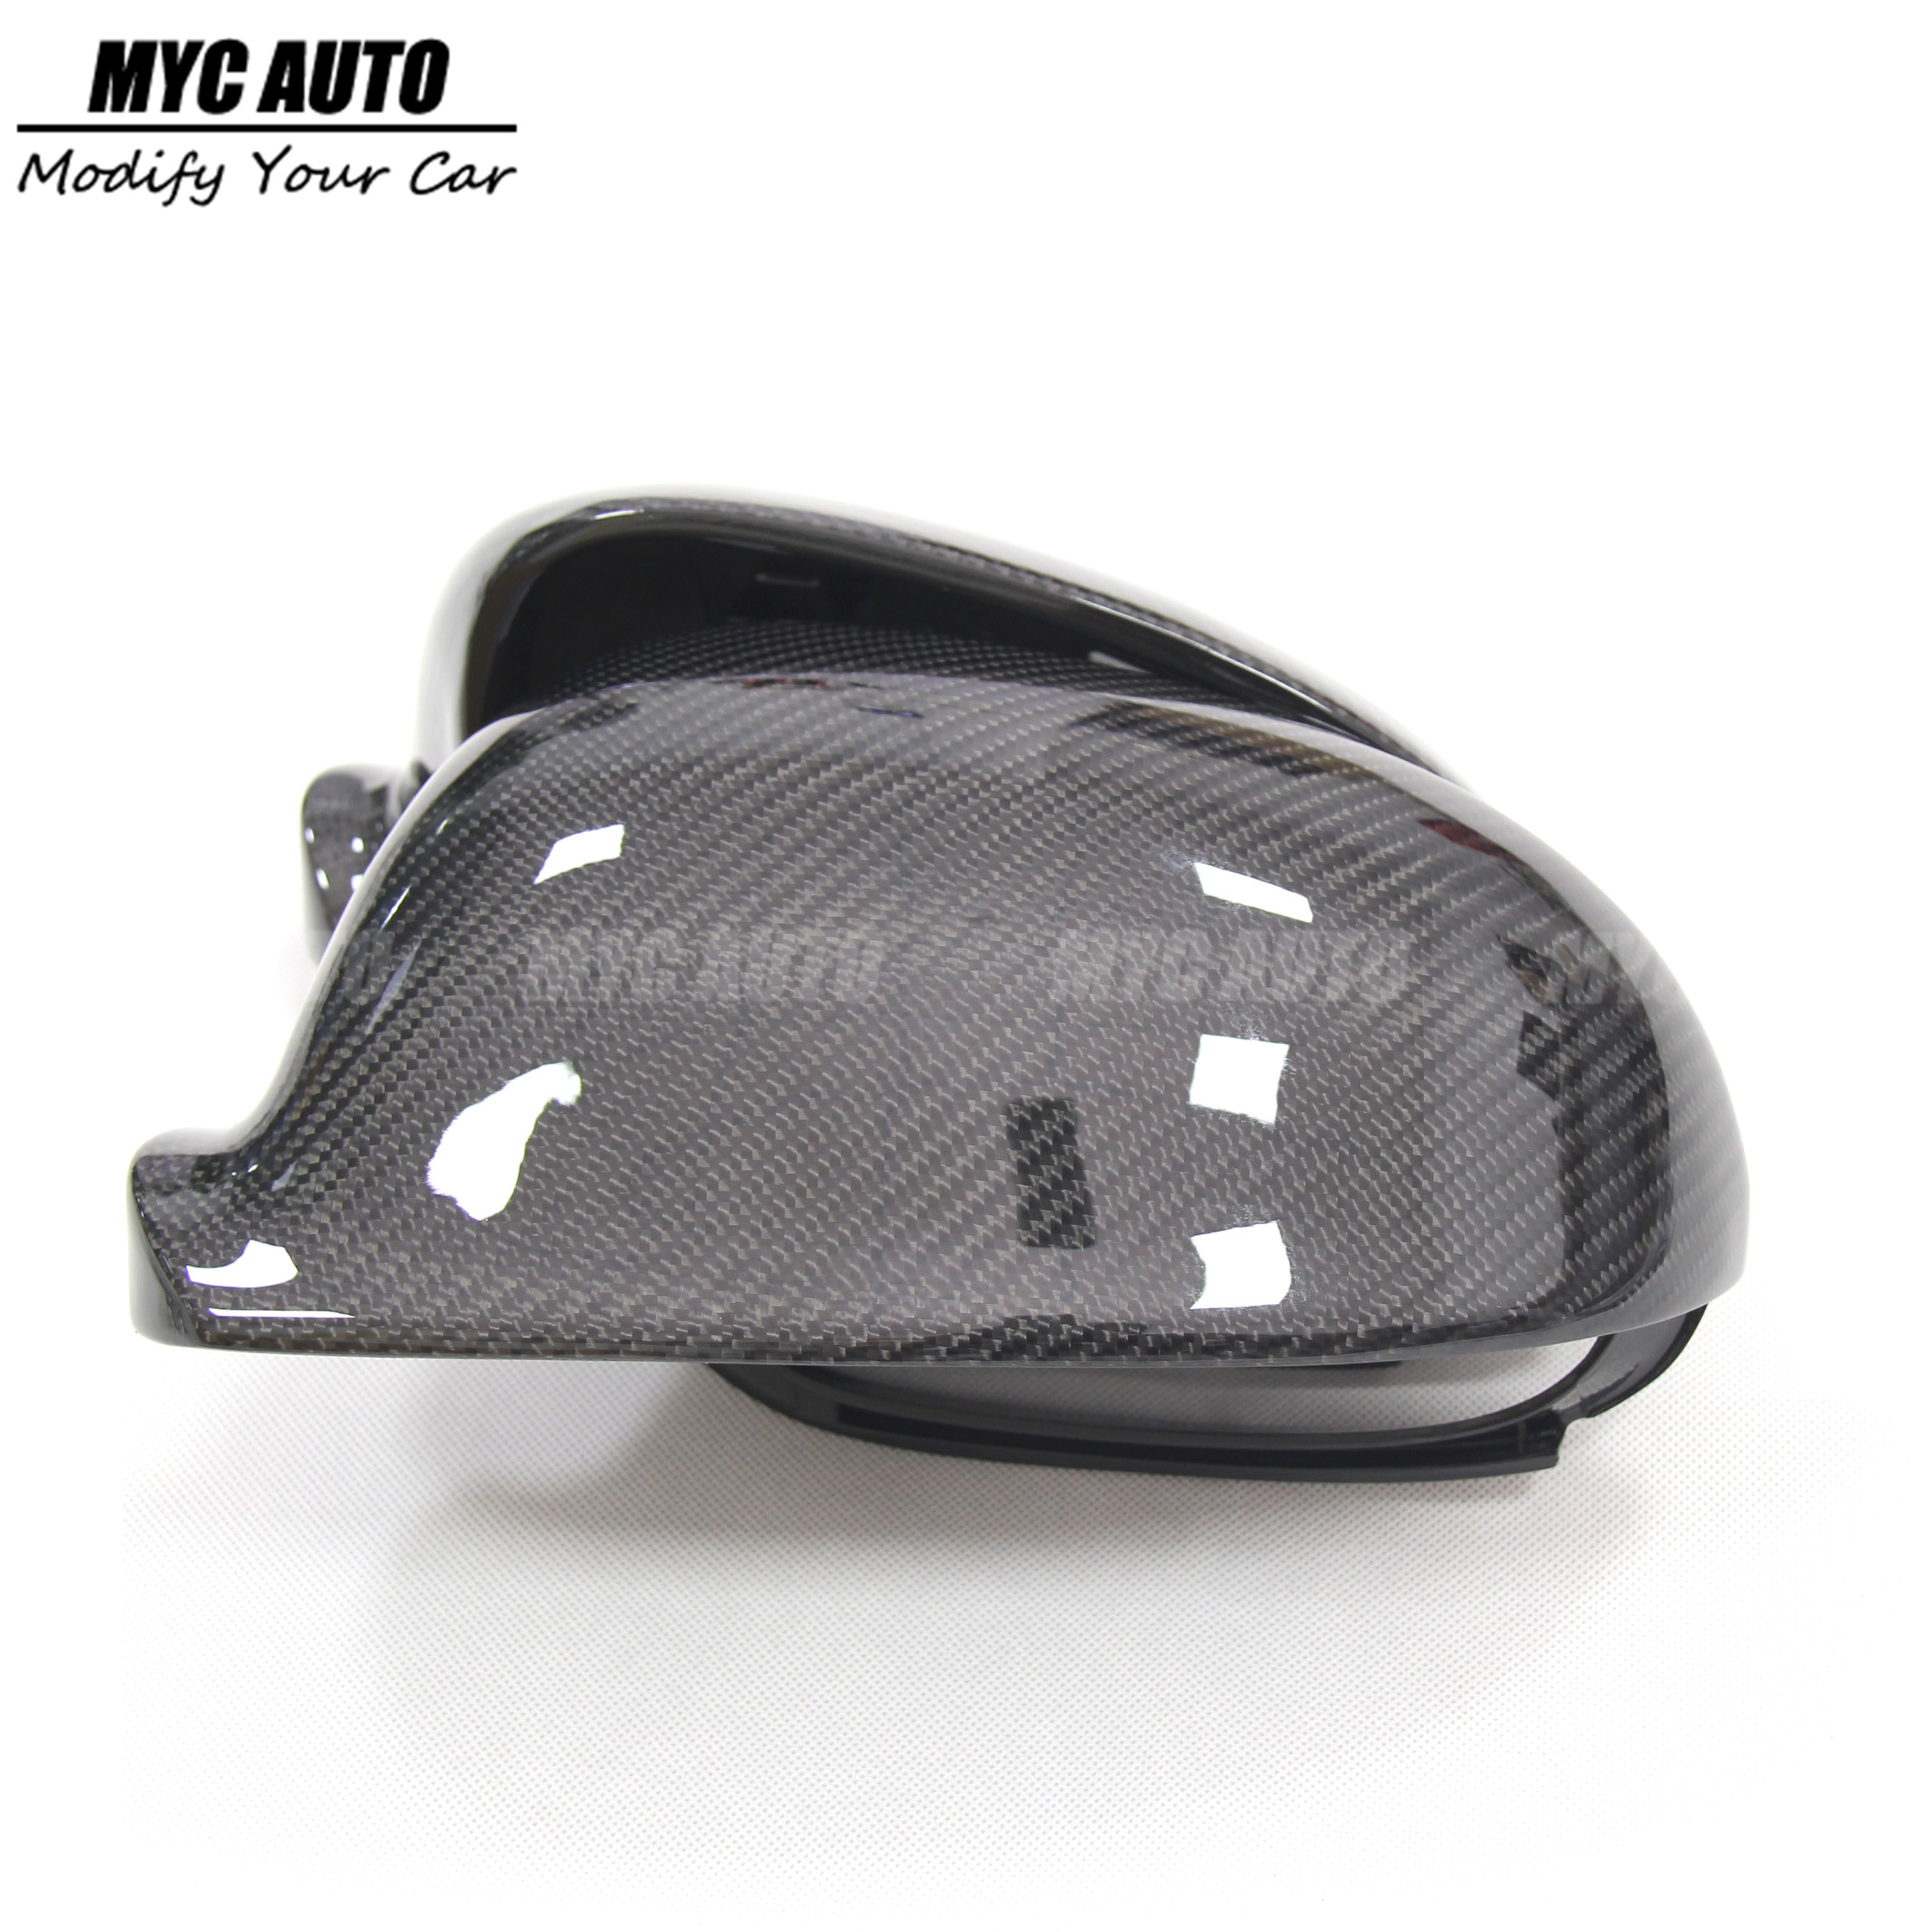 Replacement For Volkswagen VW Jetta Carbon Fiber Rear View Mirror Cover 2006 2007 2008 2009 2010 2011-2015 2016-2019